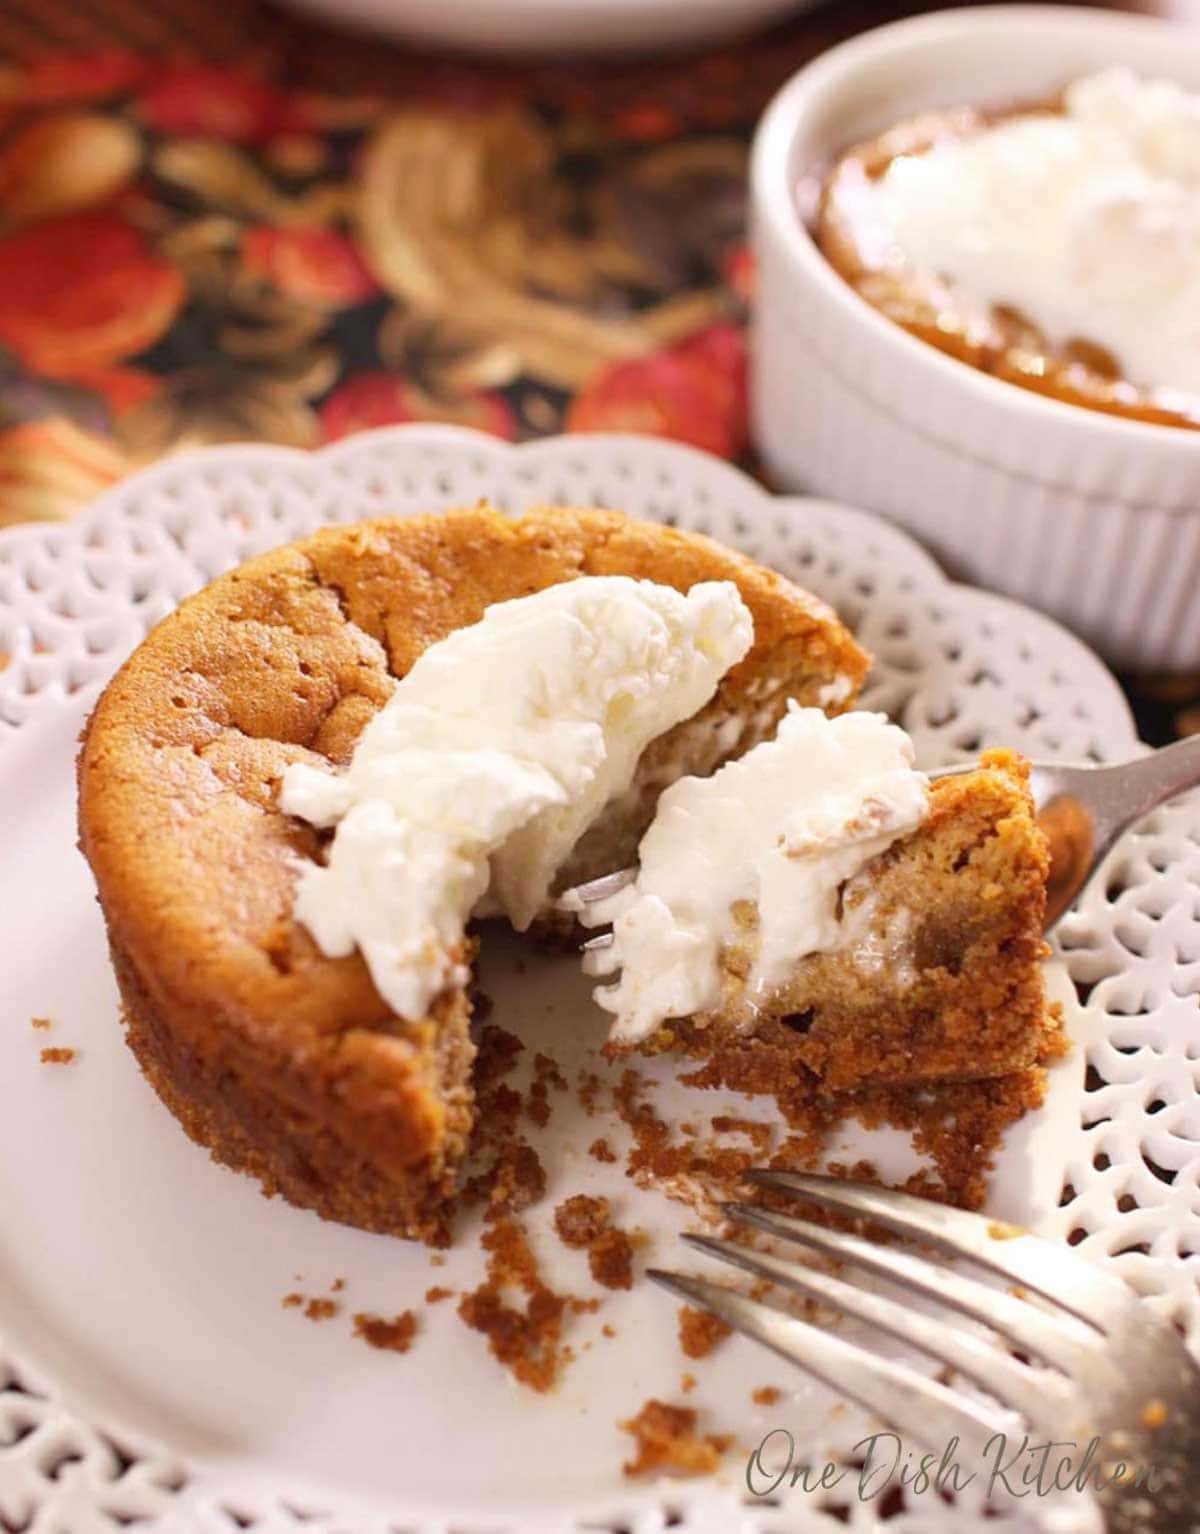 a small round pumpkin pie topped with whipped cream on a white lace plate on top of a orange and gold tablecloth.